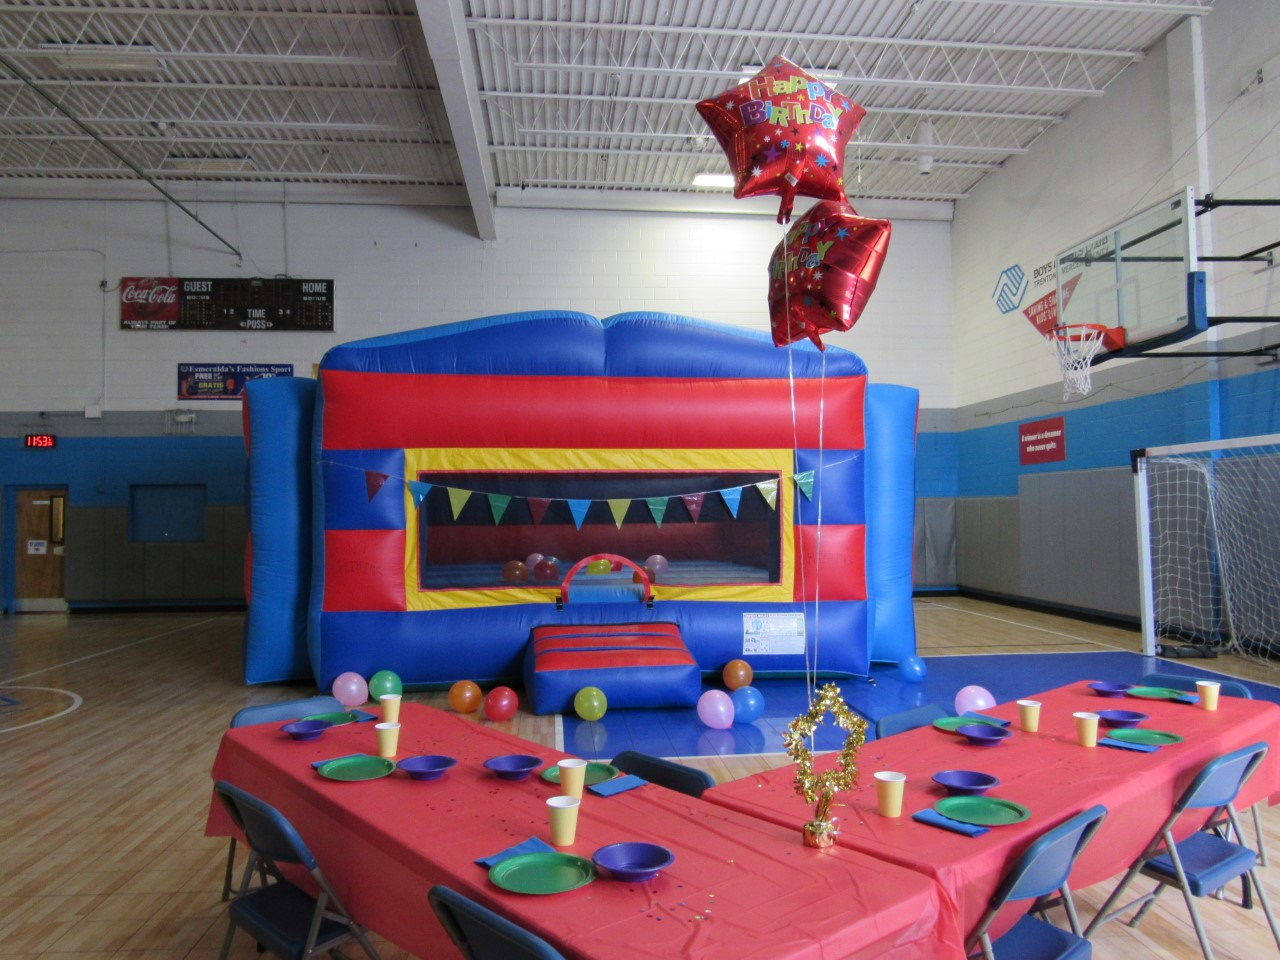 Table with birthday party decorations